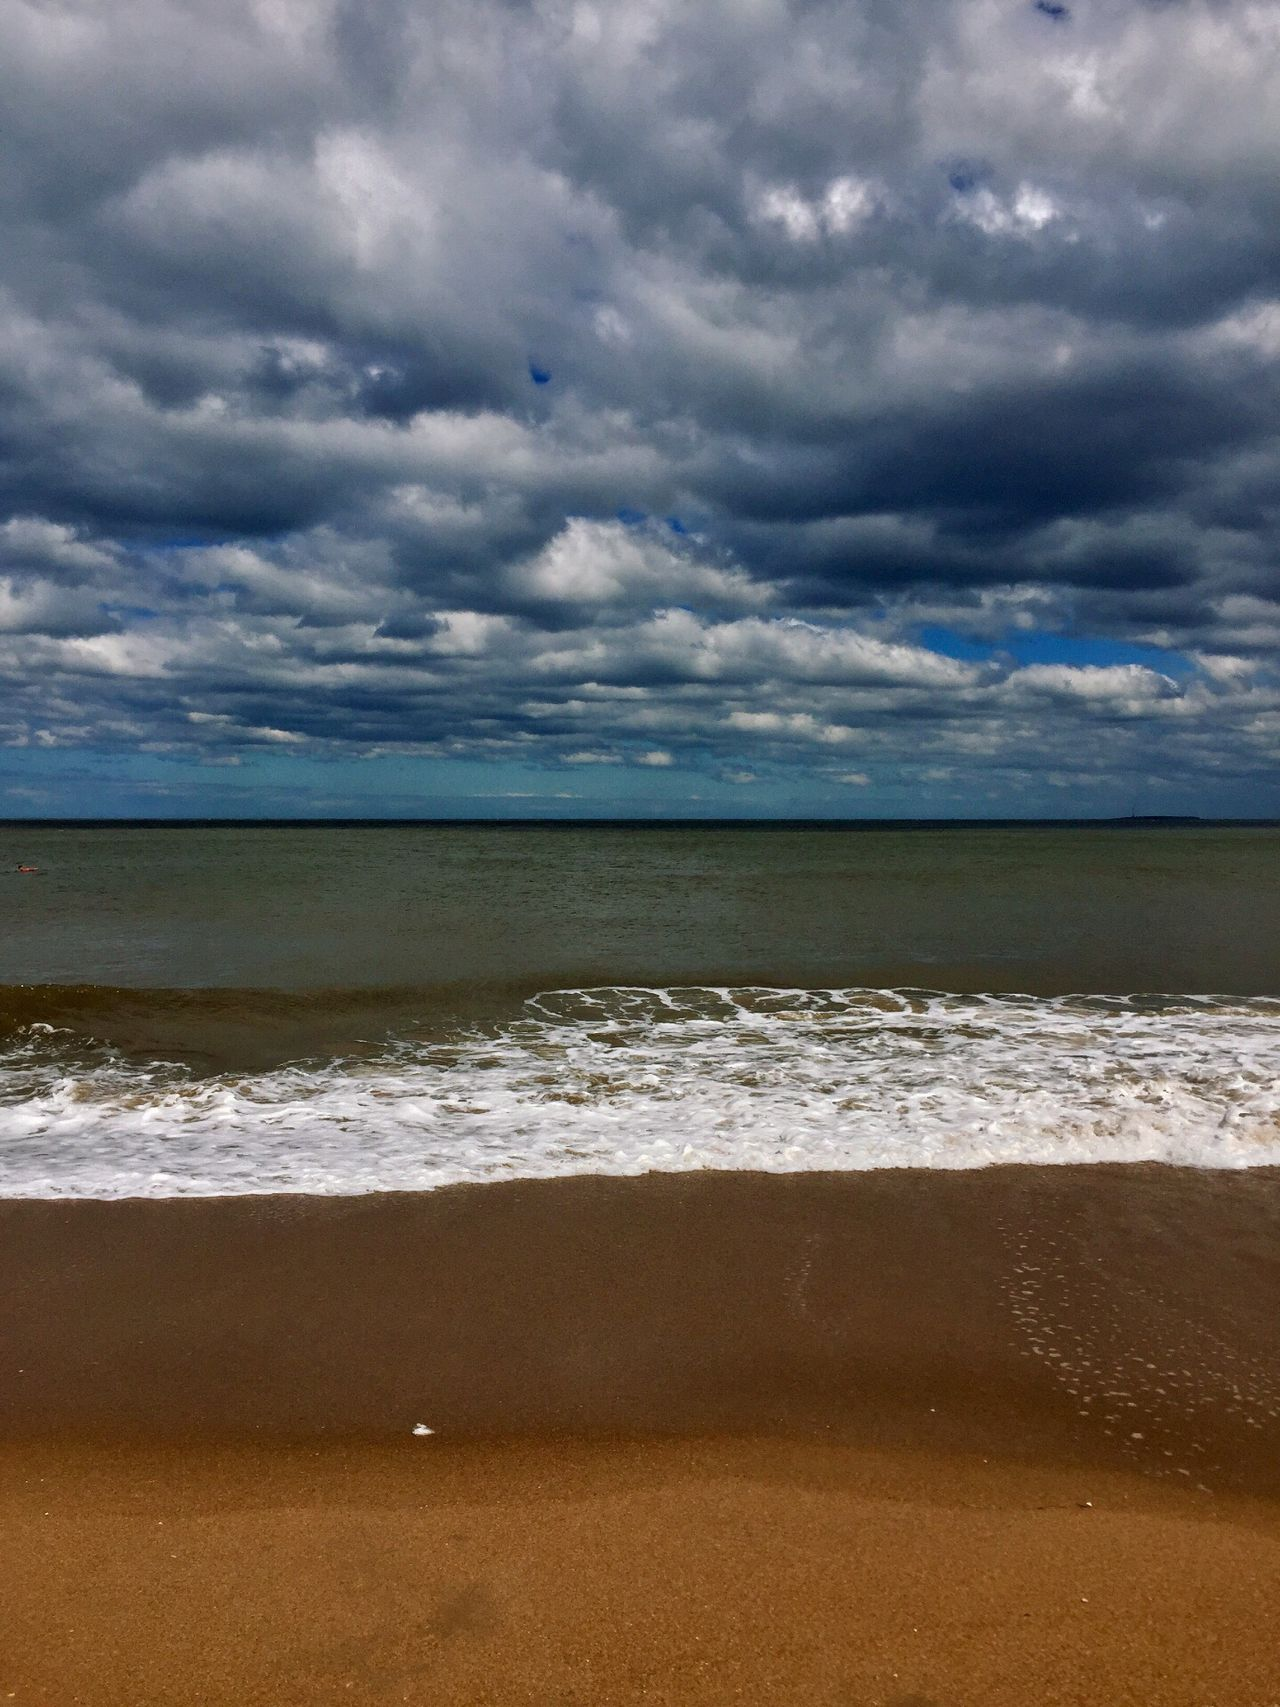 Sea Beach Horizon Over Water Sky Nature Water Scenics Cloud - Sky Beauty In Nature Sand Shore Outdoors Tranquility Tranquil Scene No People Wave Day Sea And Sky Cloudsporn Cloud Clouds And Sky